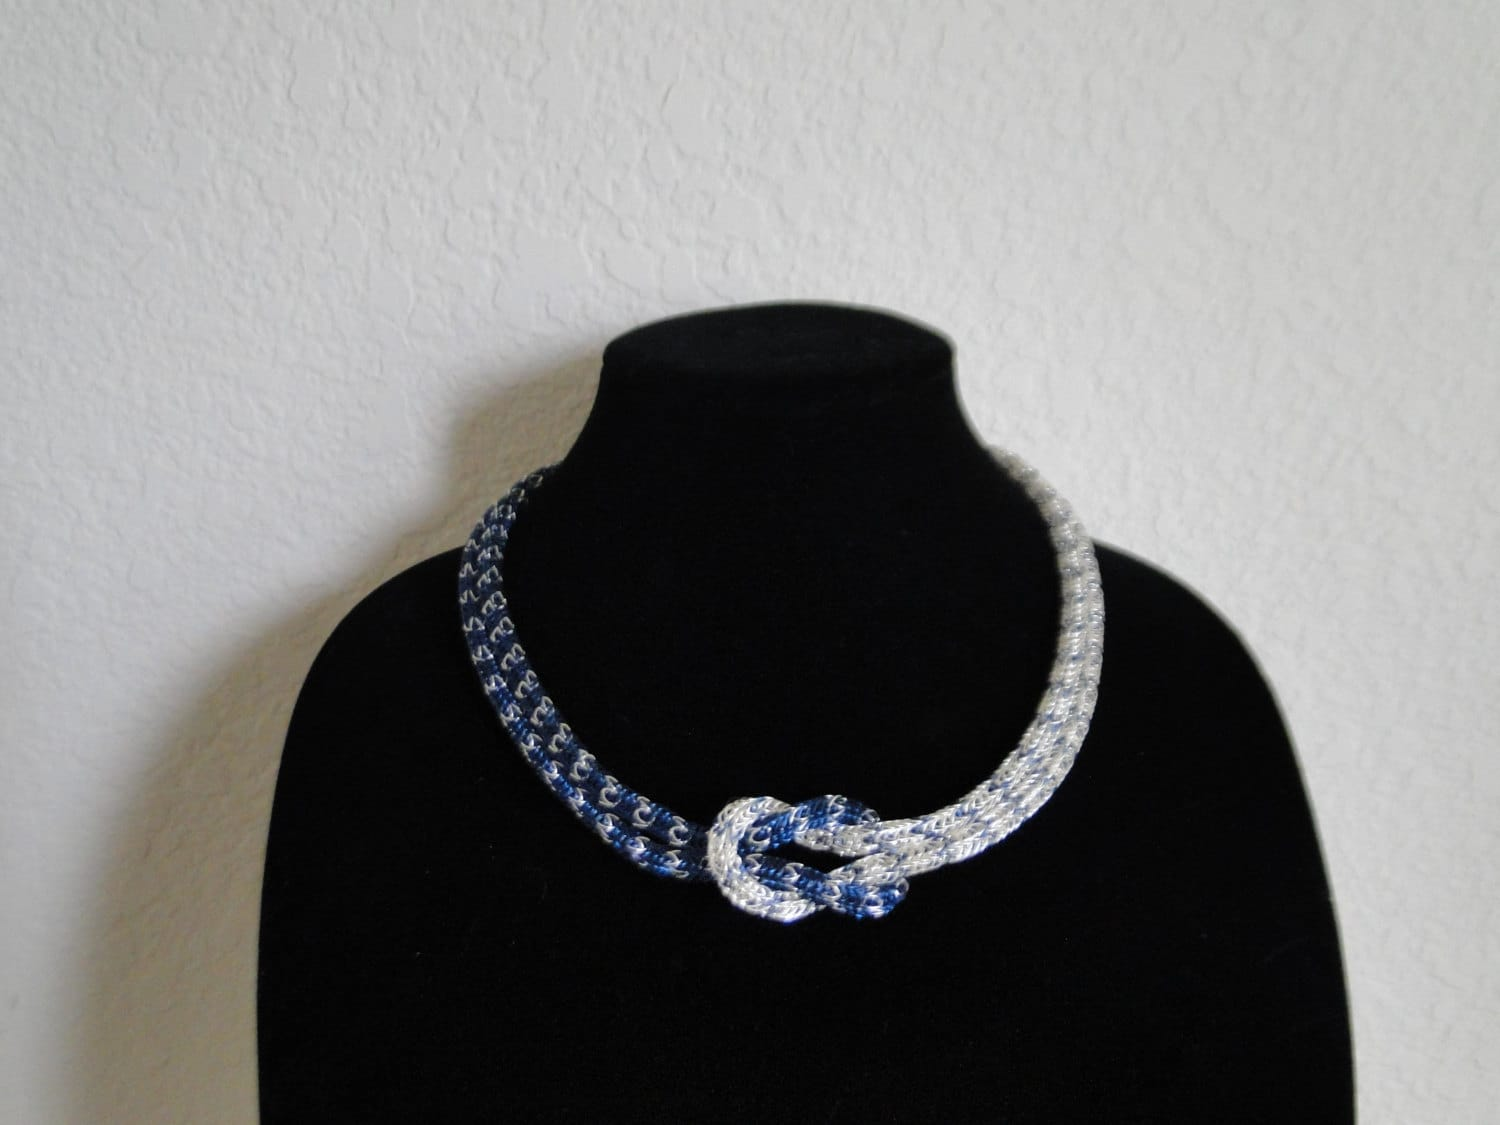 Knitting Starting Knot : Viking knit love knot necklace statement blue sapphire silver